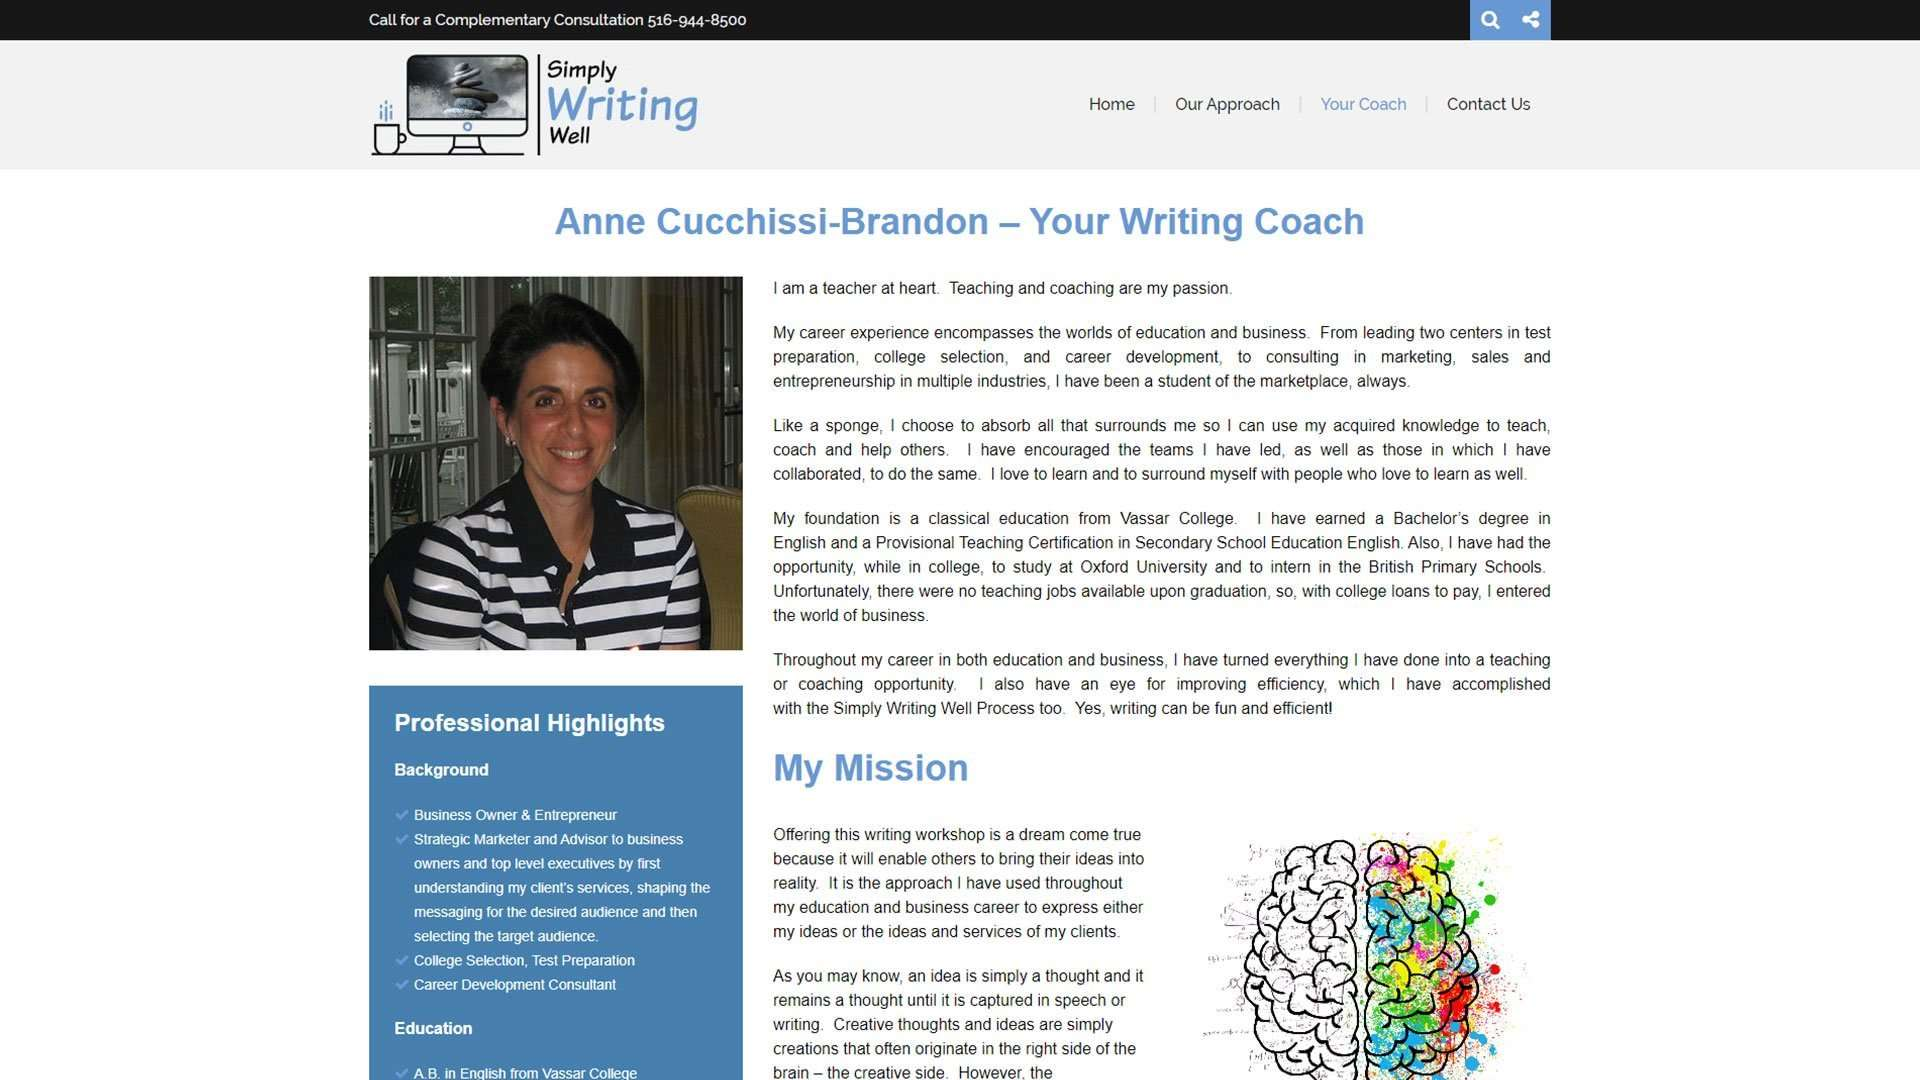 simply-writing-well-your-coach